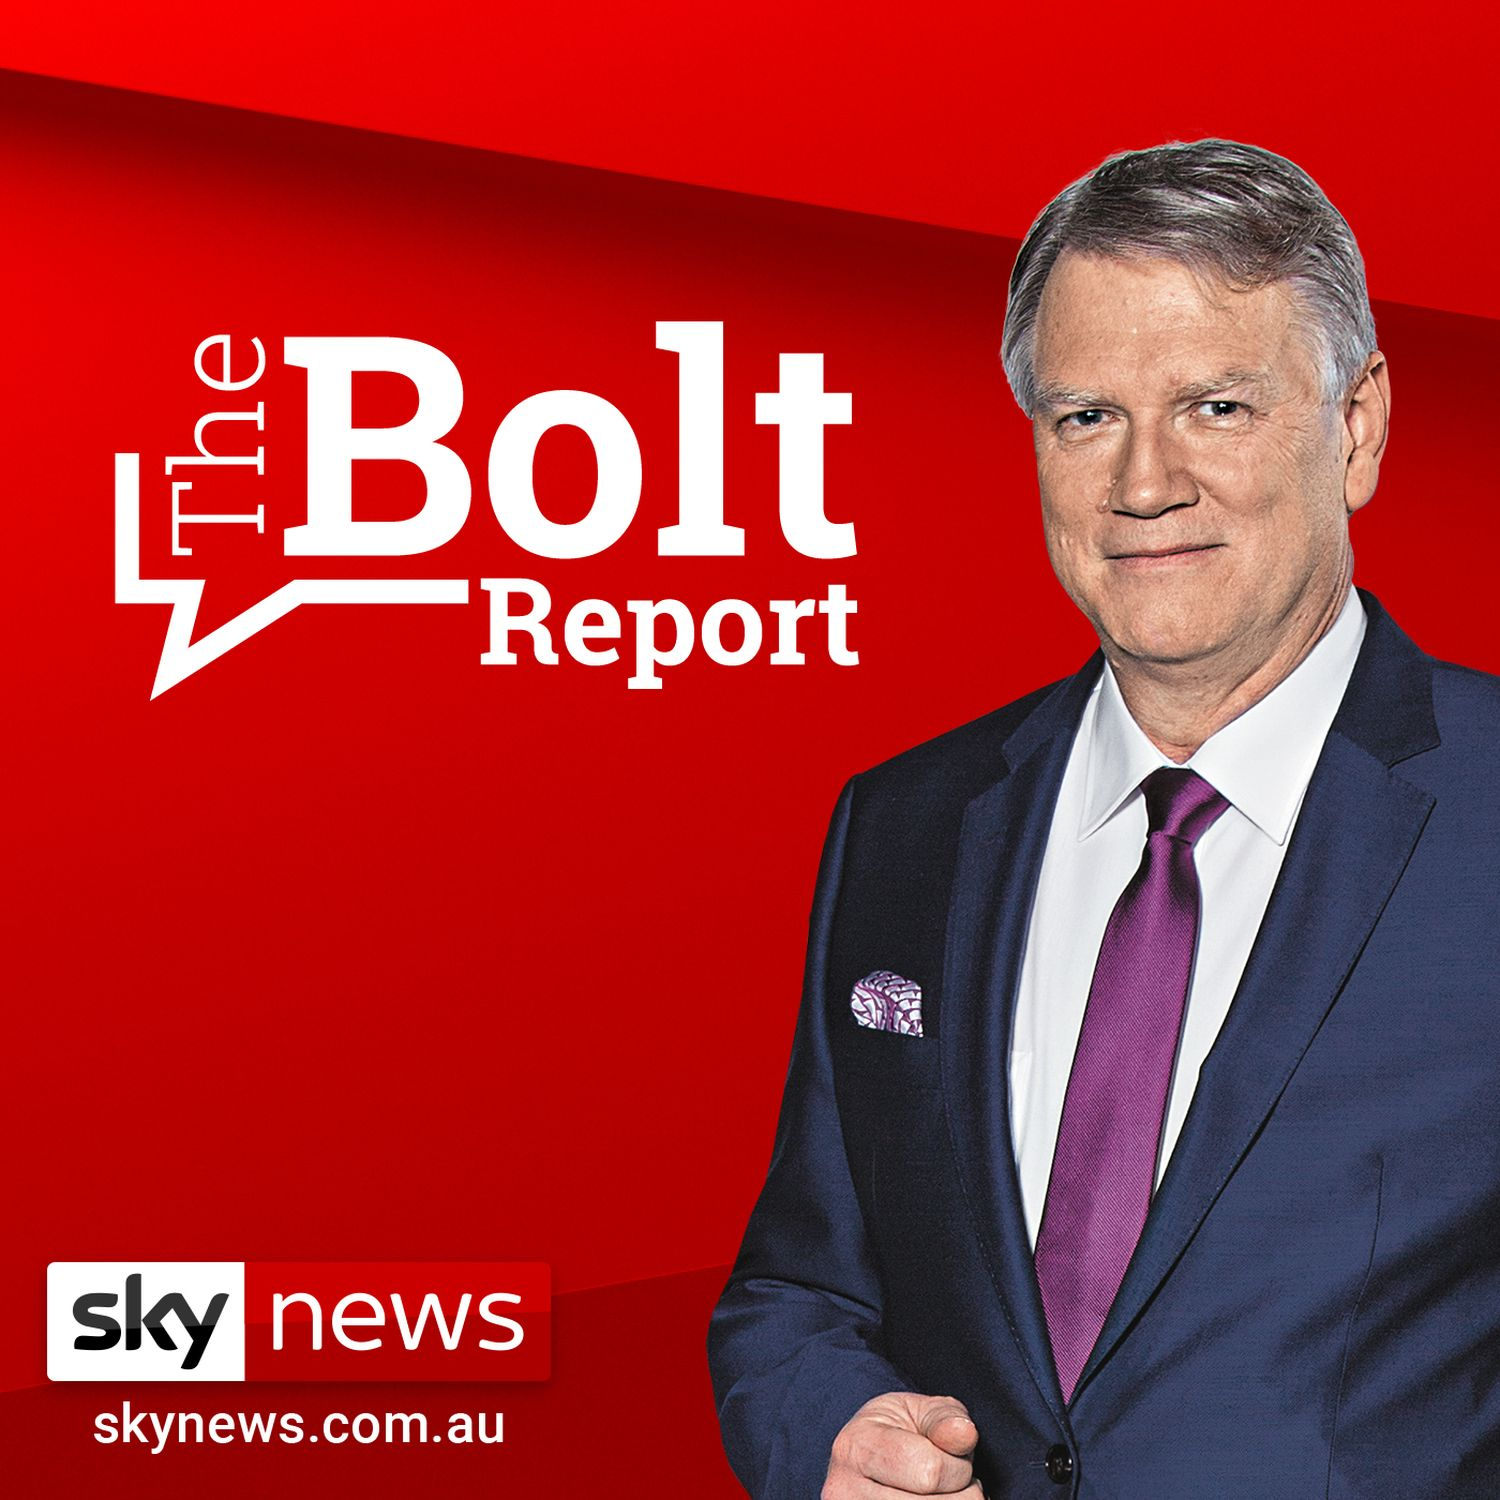 Sky News - The Bolt Report on acast